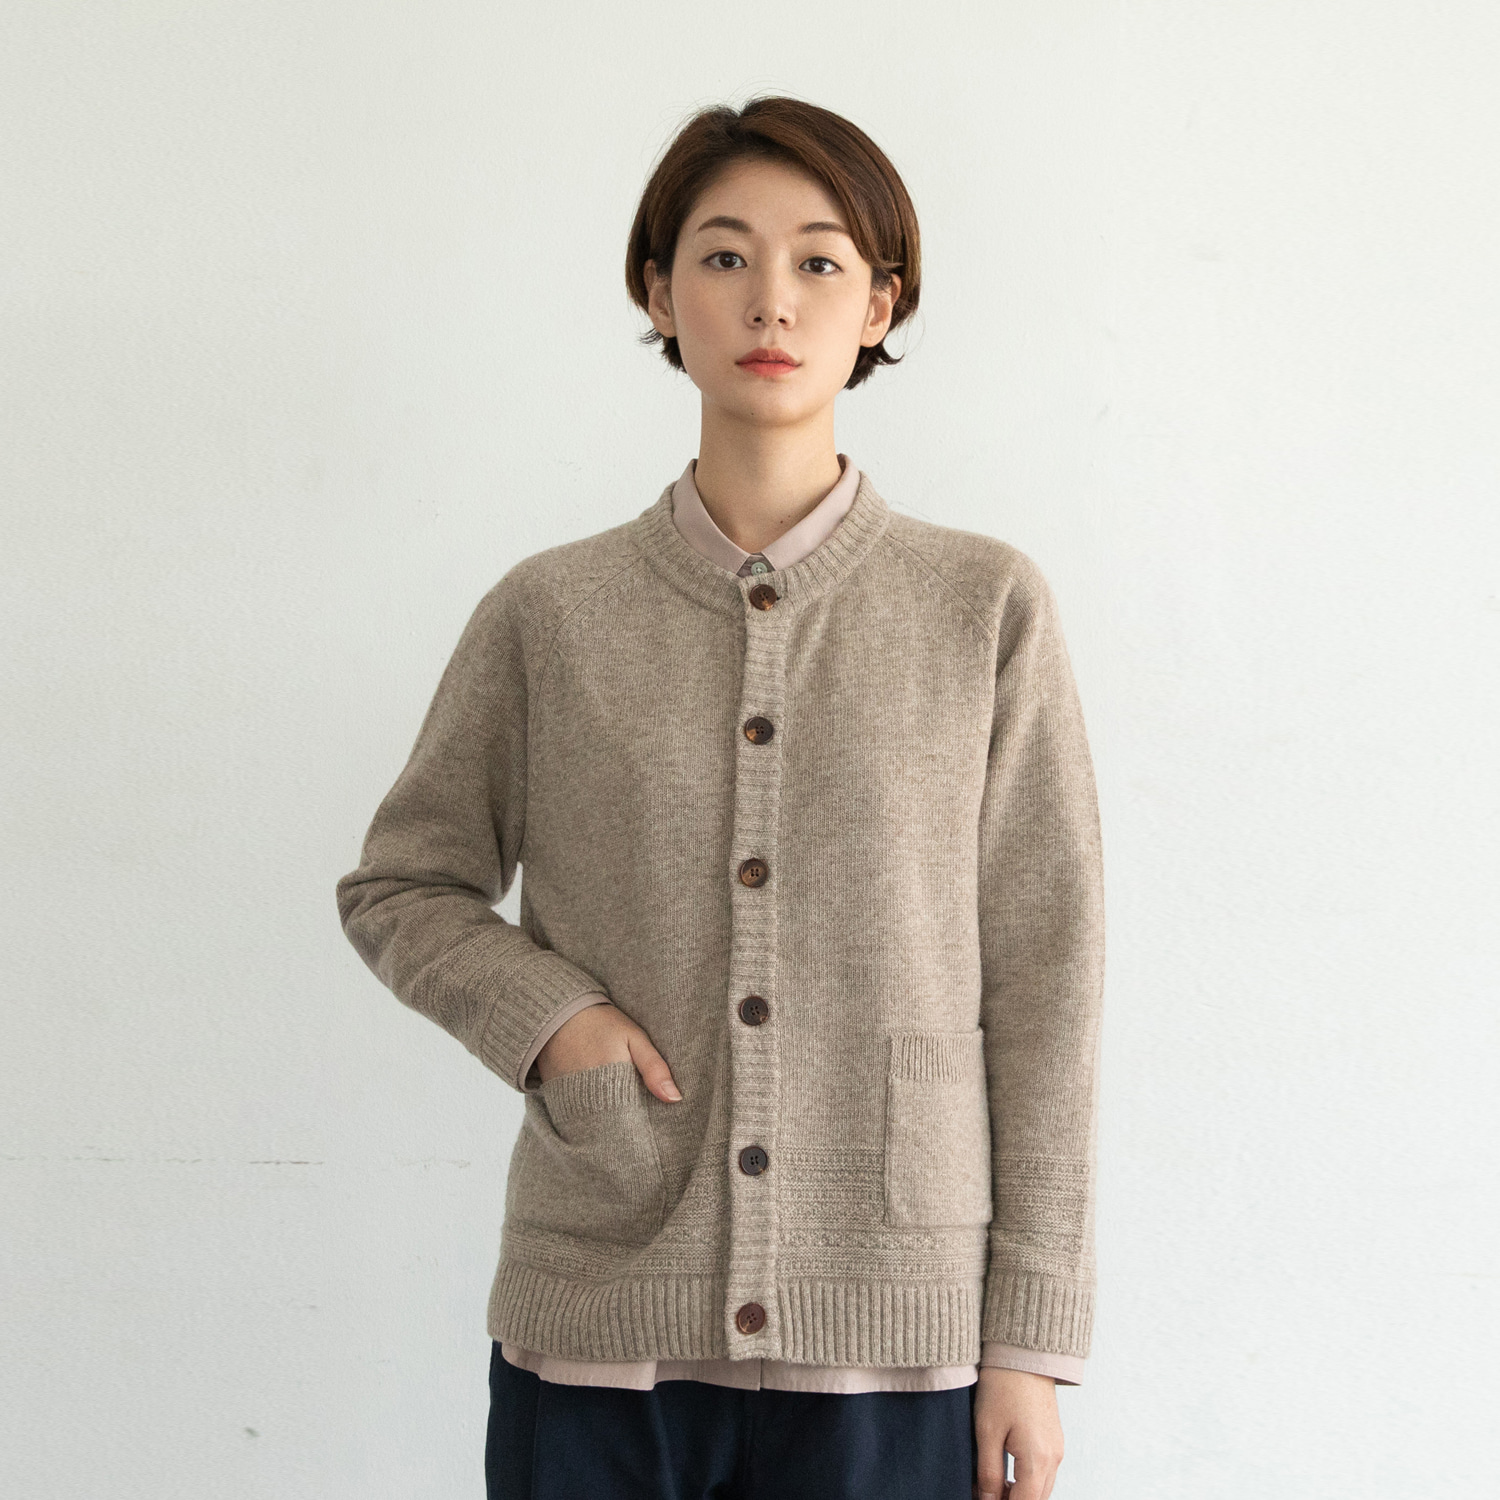 Women Gentle Link Cardigan (Oatmeal)